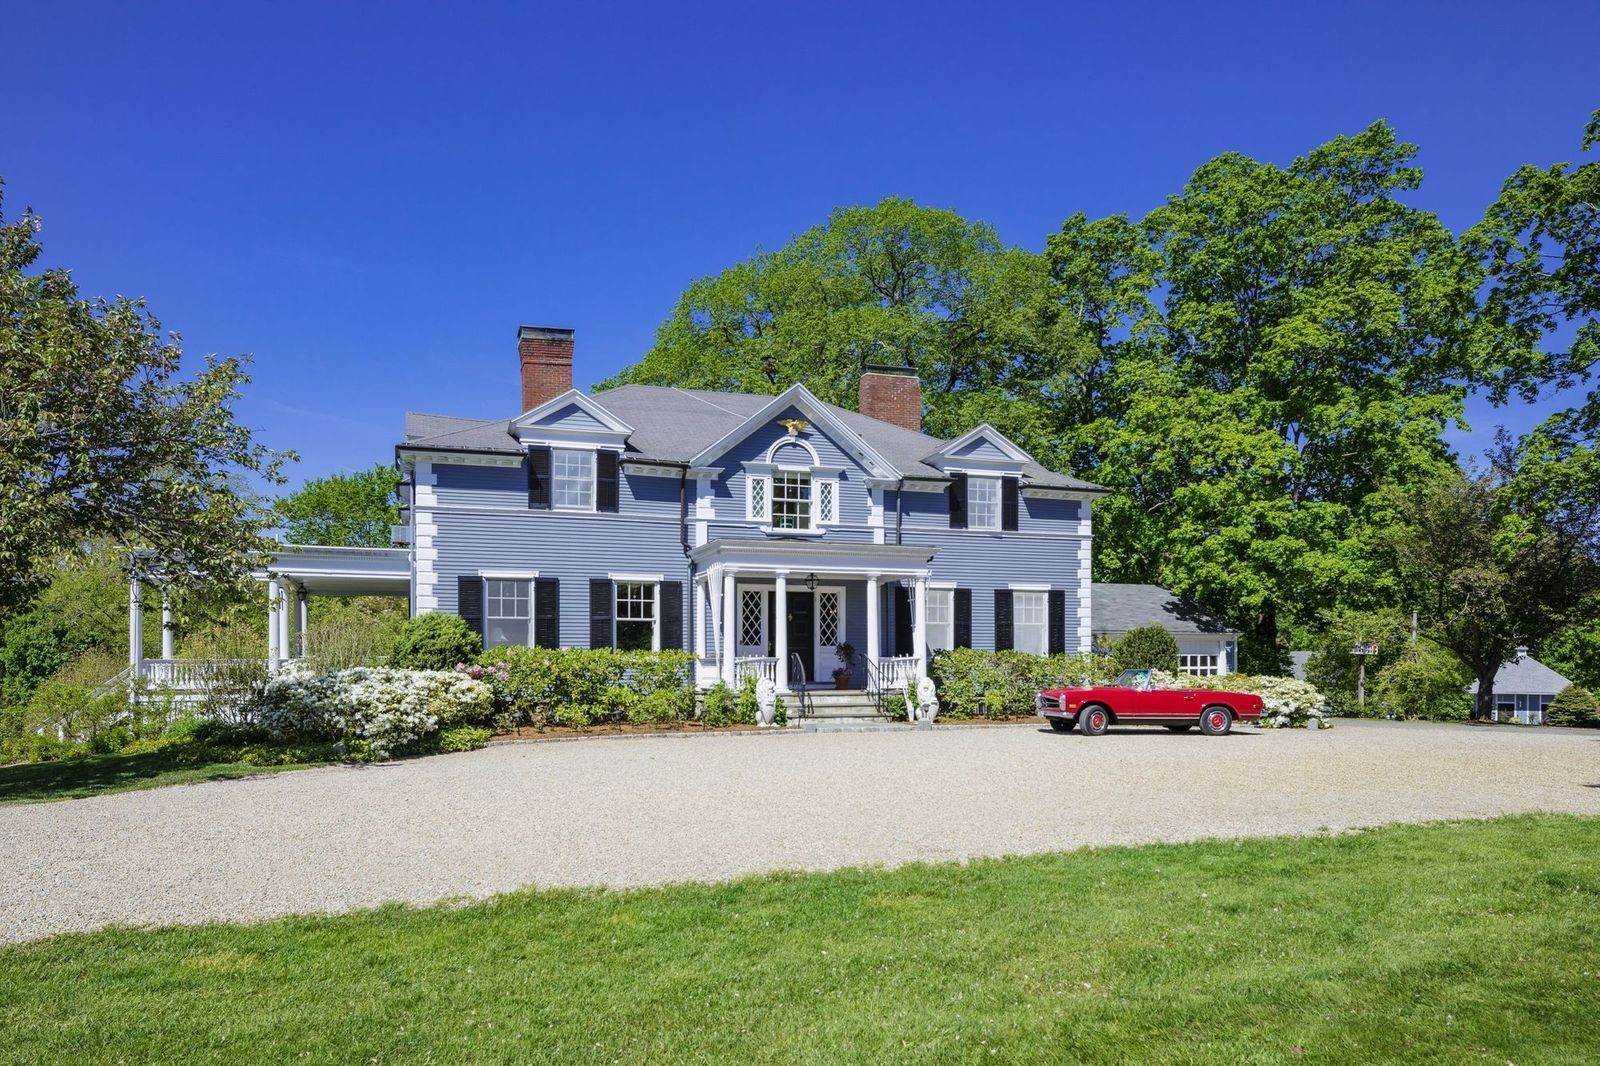 3. Single Family Home vì Bán tại Sunswick 65 Waldingfield Road Ipswich, Massachusetts,01938 Hoa Kỳ